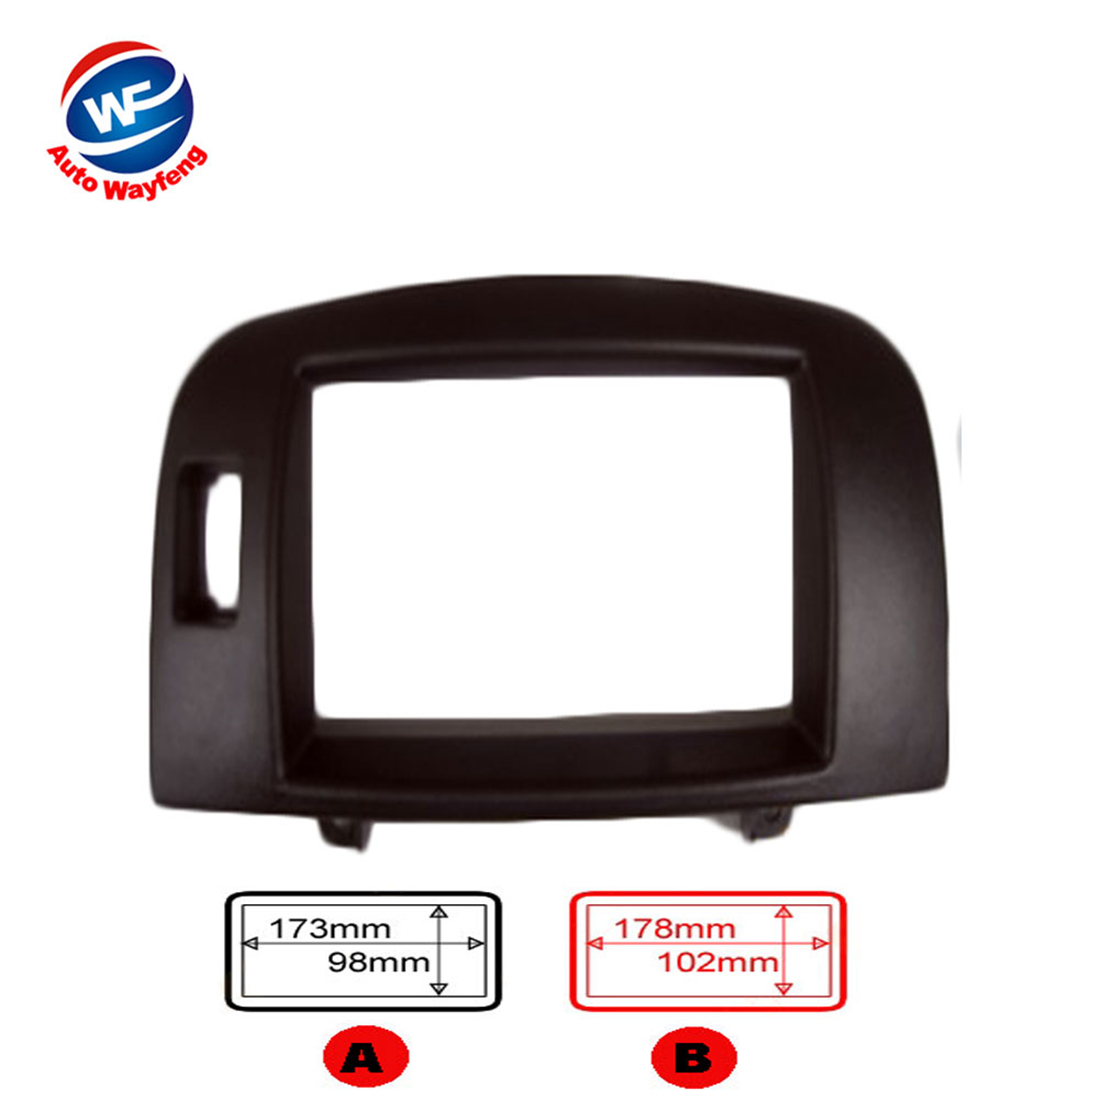 Car Radio Fascia Fit For HYUNDAI Sonata NF Sonica 2004-2008 Wo/airbag Signal Car DVD Frame Double Din Fascia Audio Bezel Facia